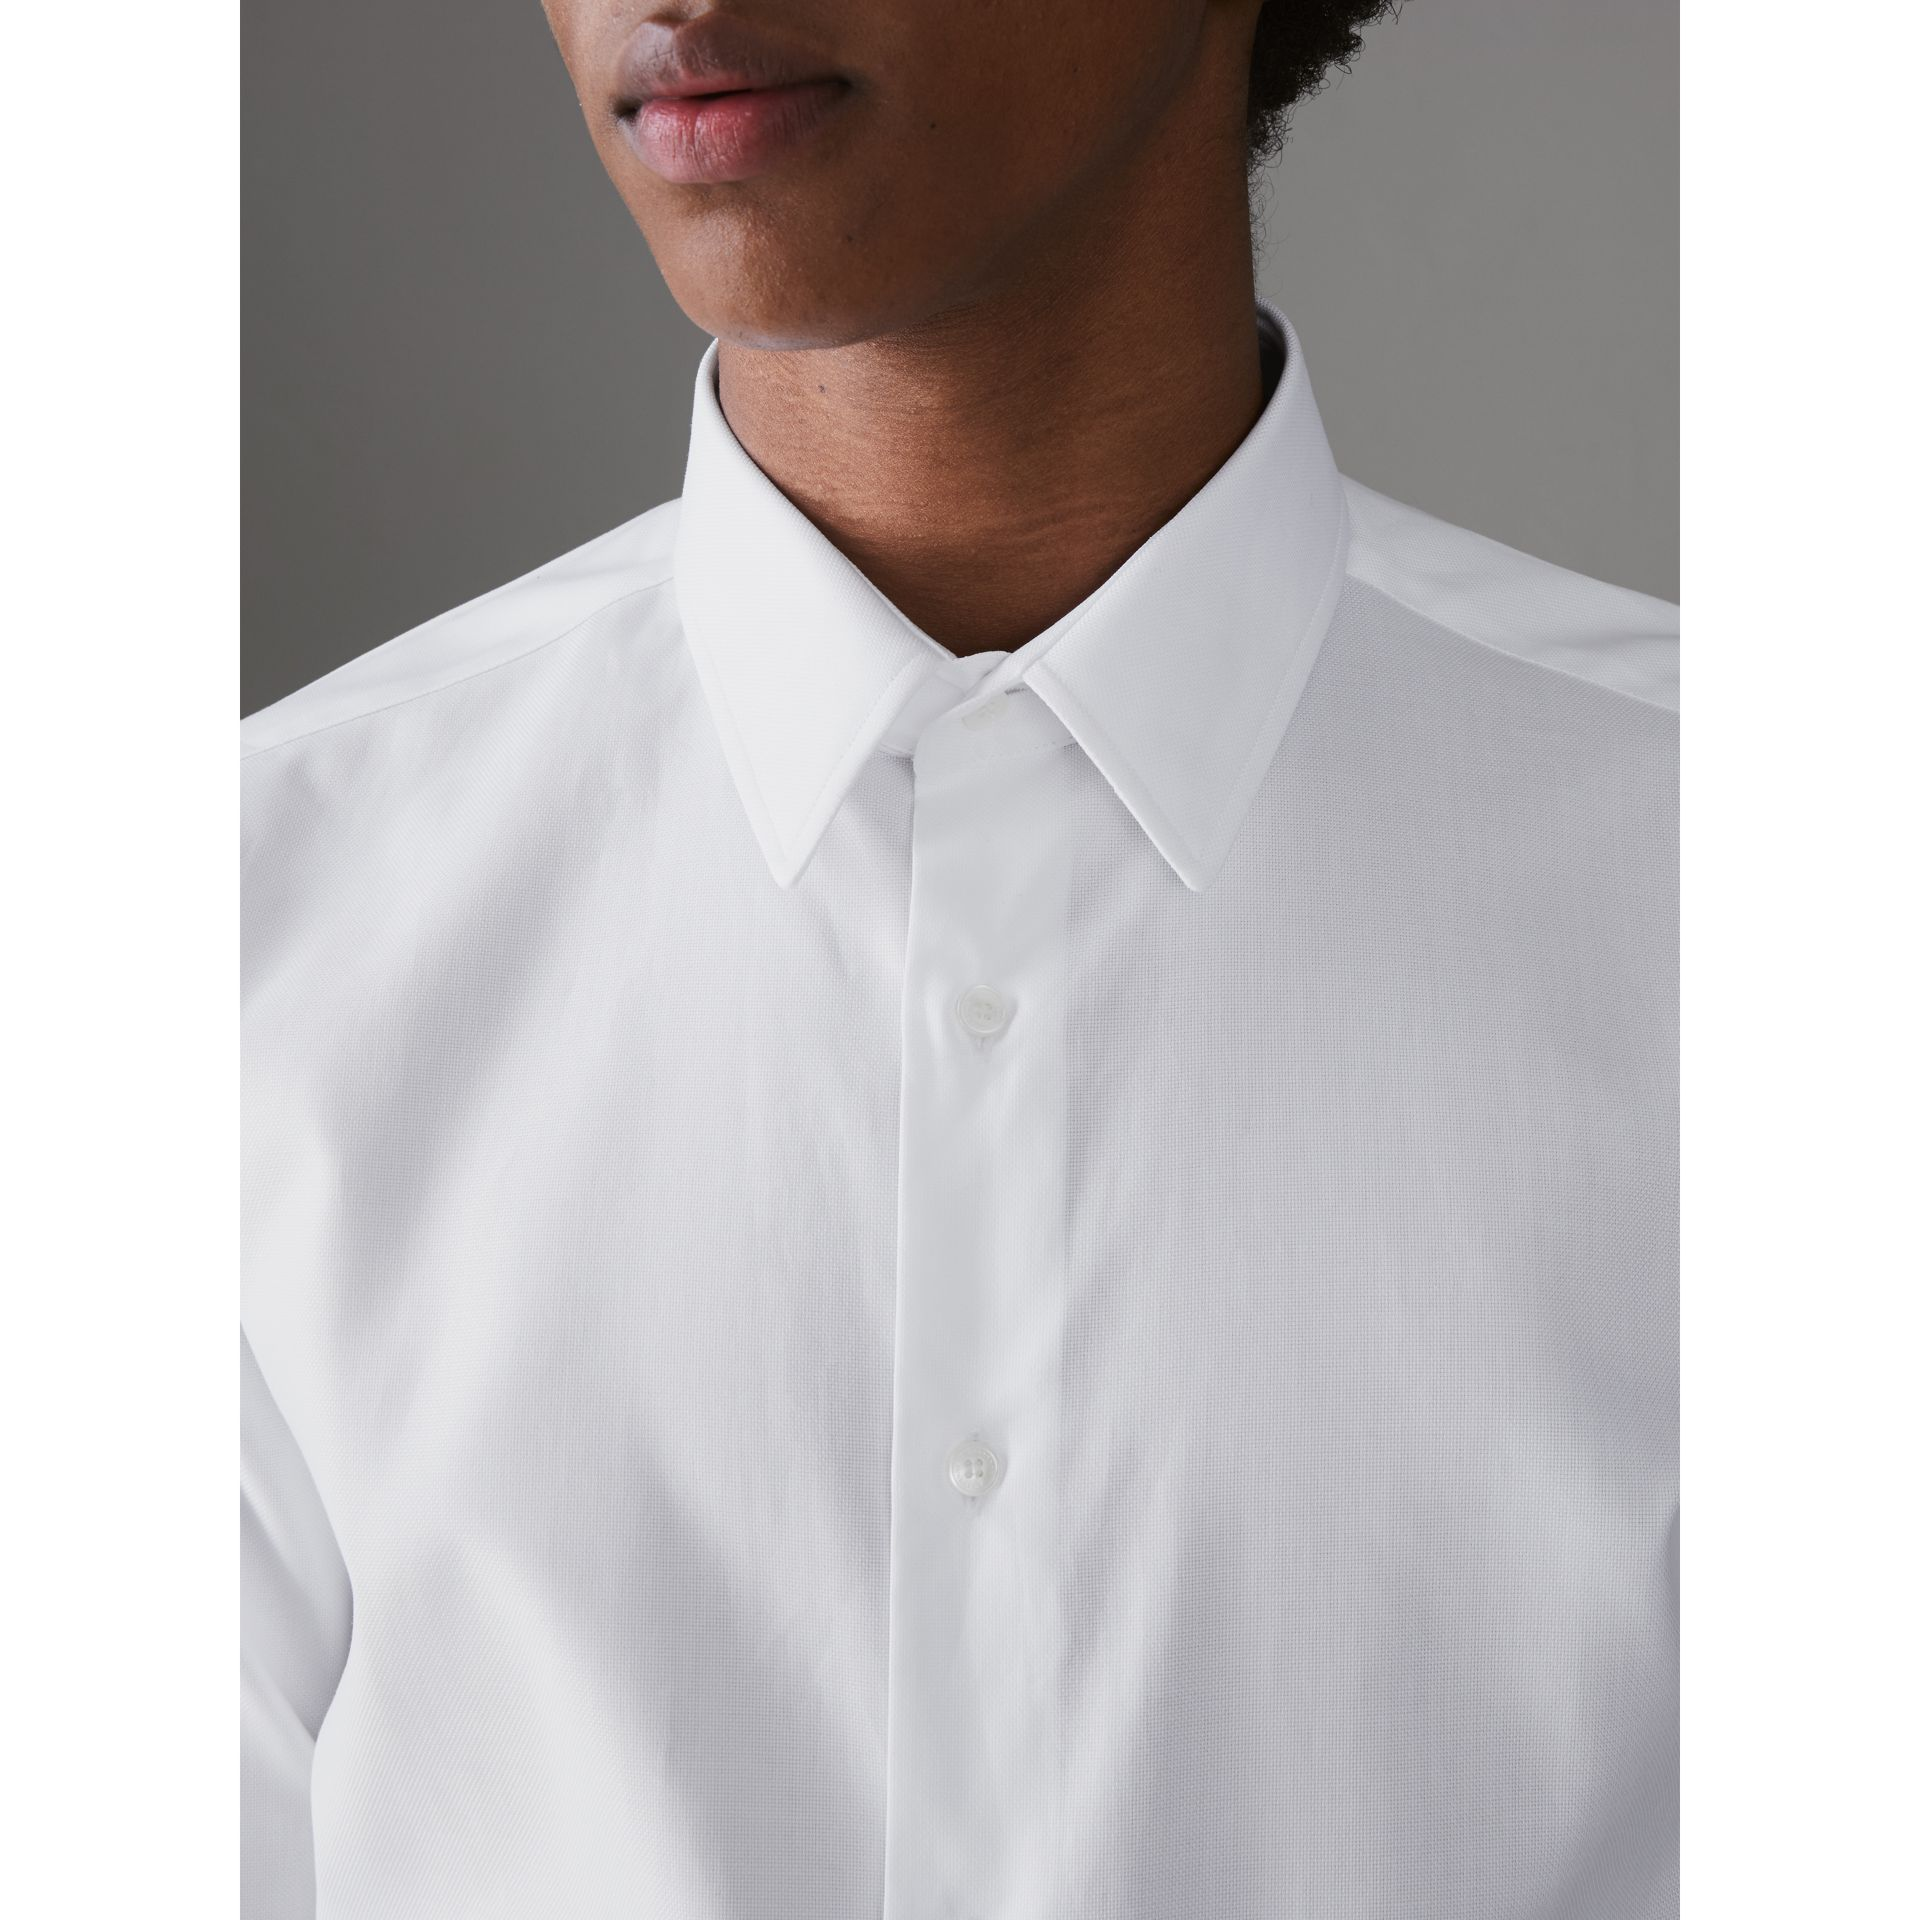 Modern Fit Cotton Shirt in White - Men | Burberry - gallery image 1